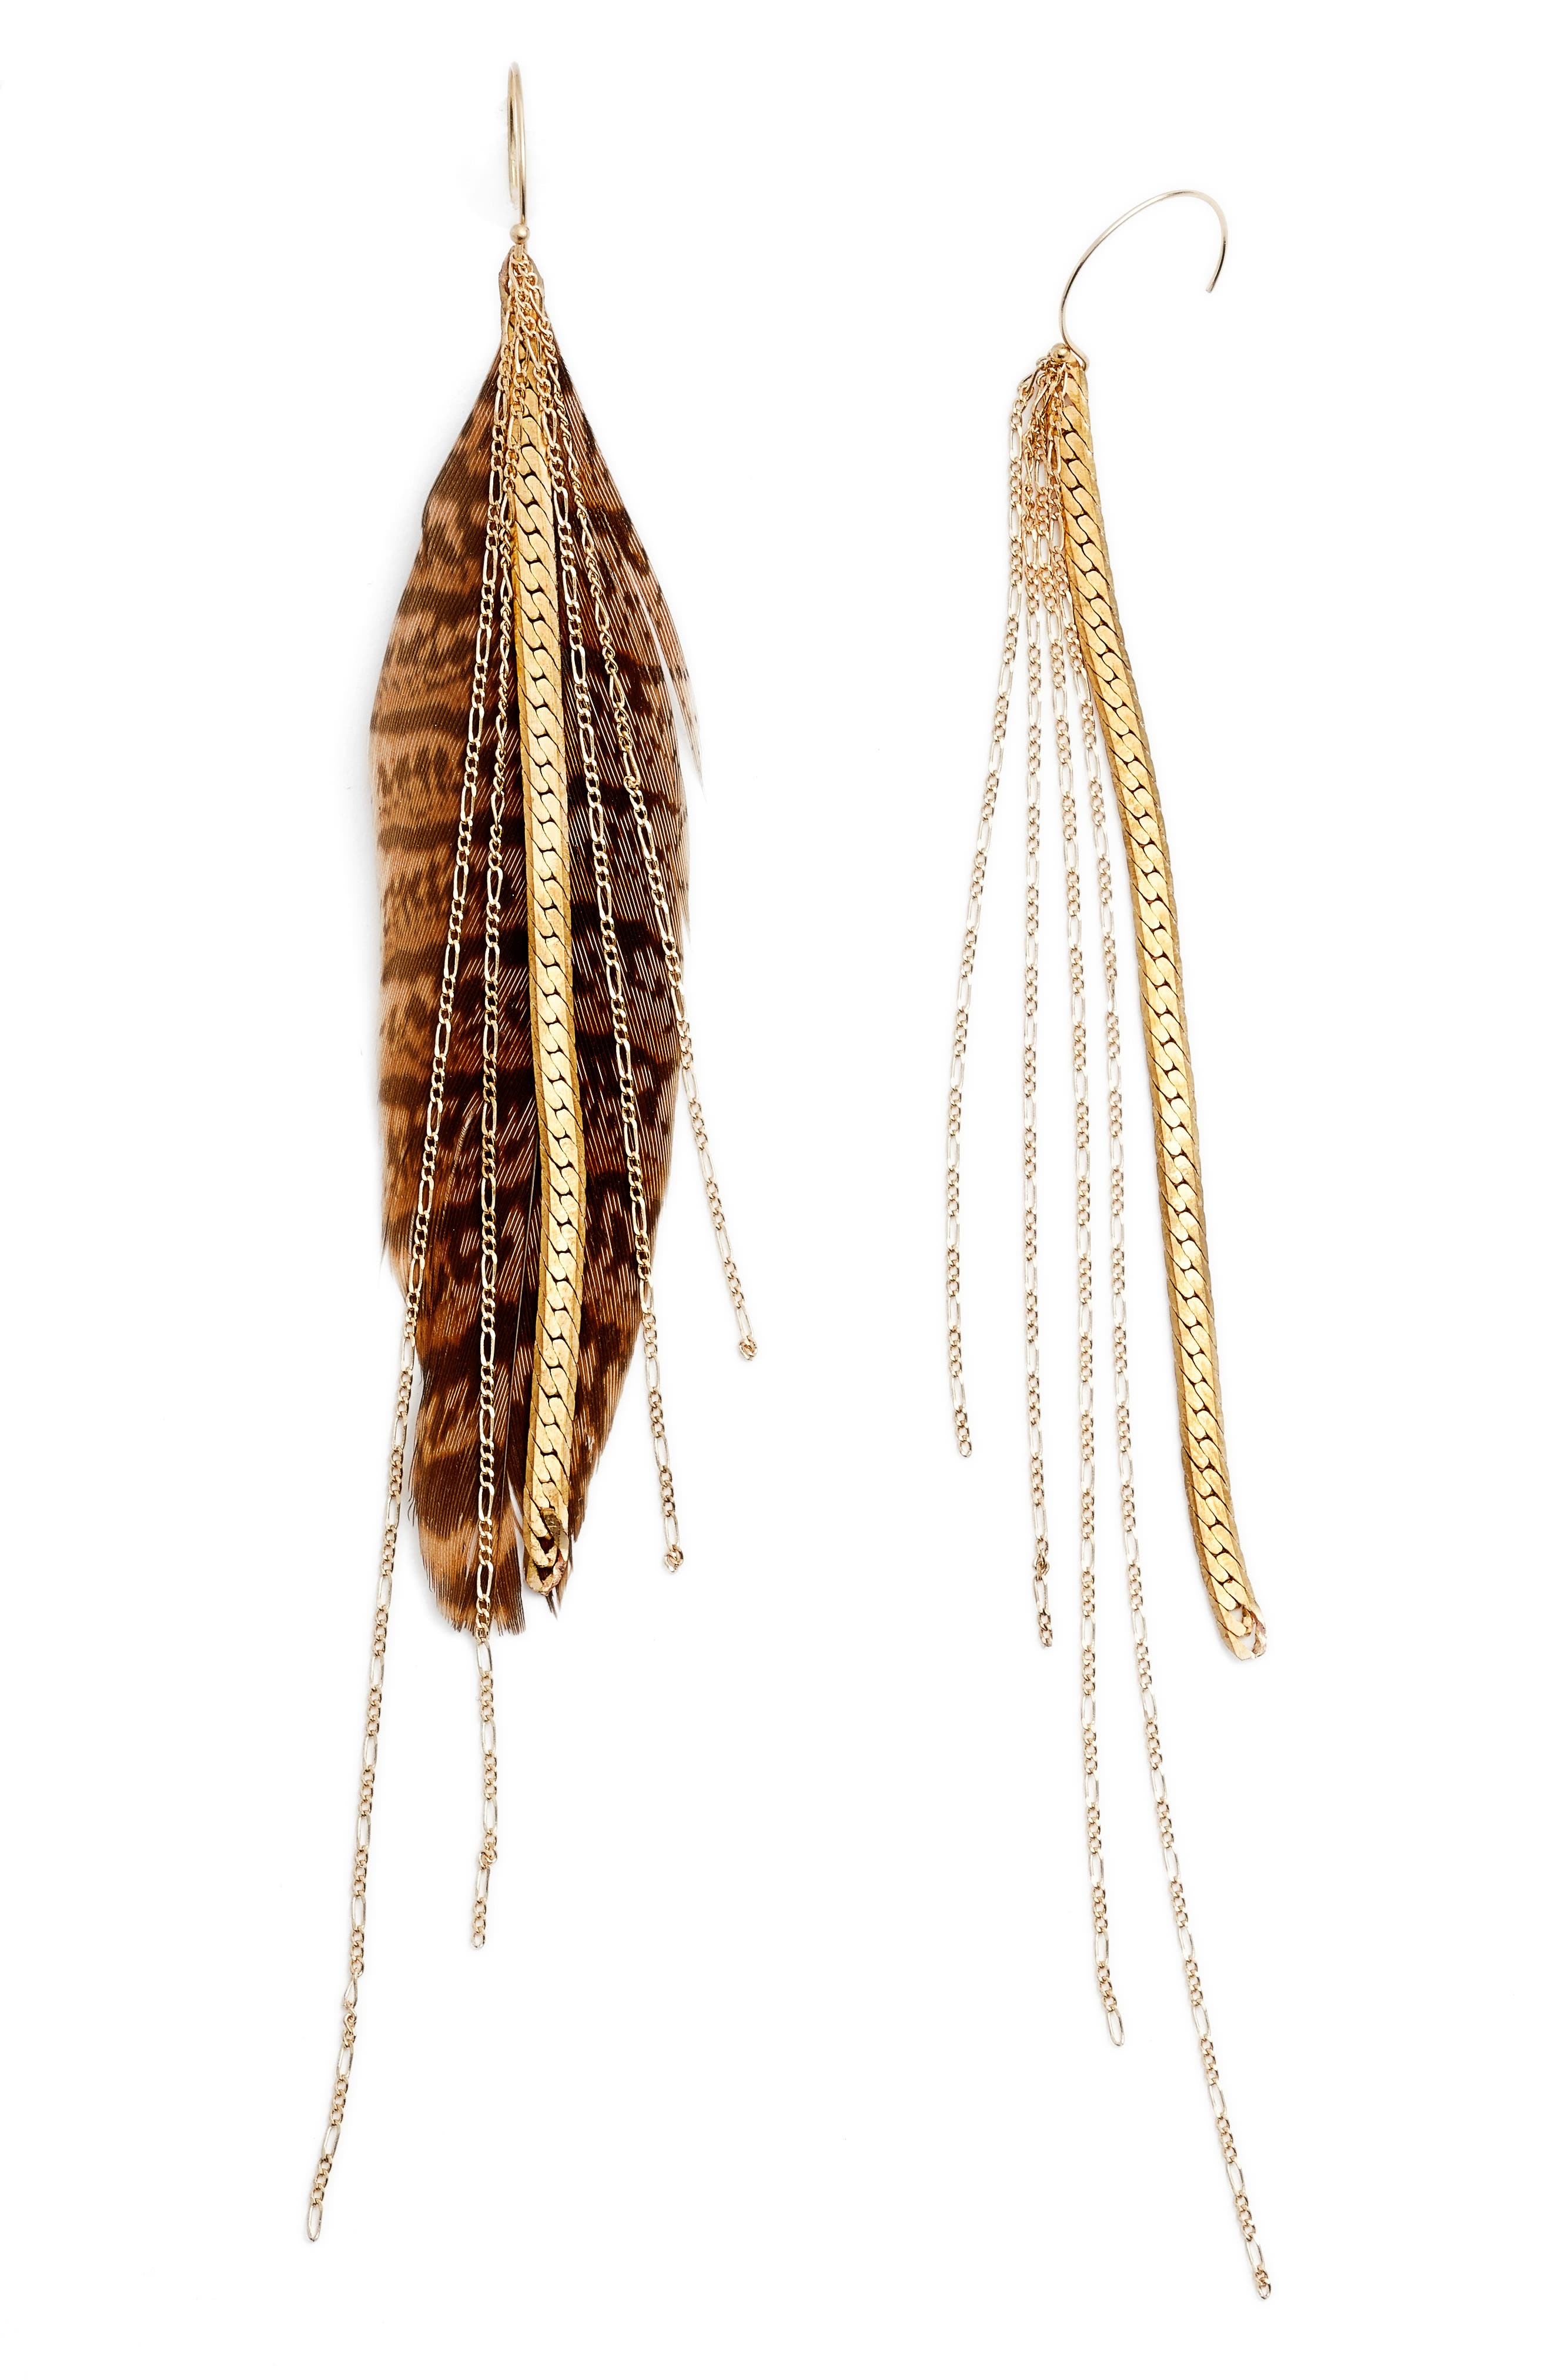 Chain & Feather Earrings,                             Main thumbnail 1, color,                             Gold/ Tan